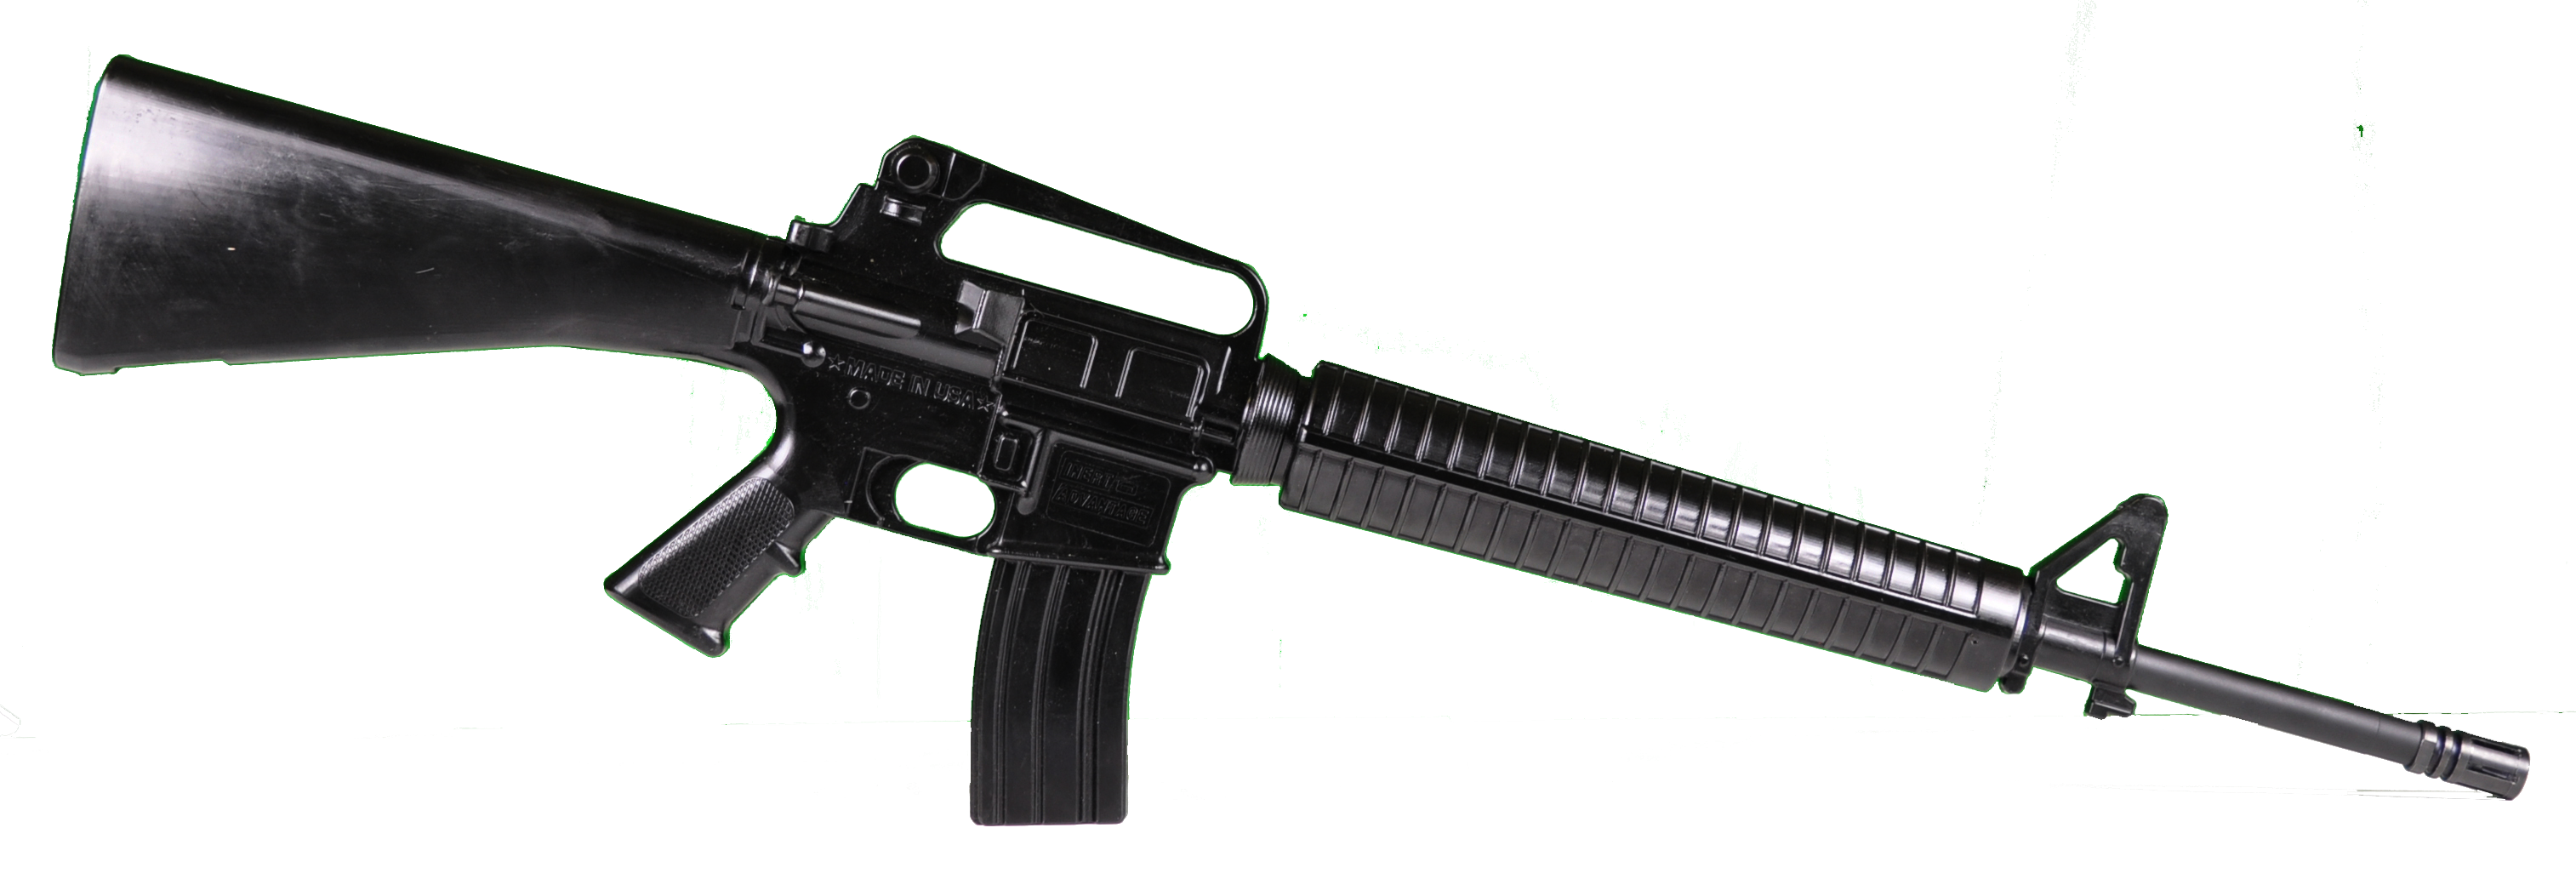 Clipart gun weapon. M free collection download